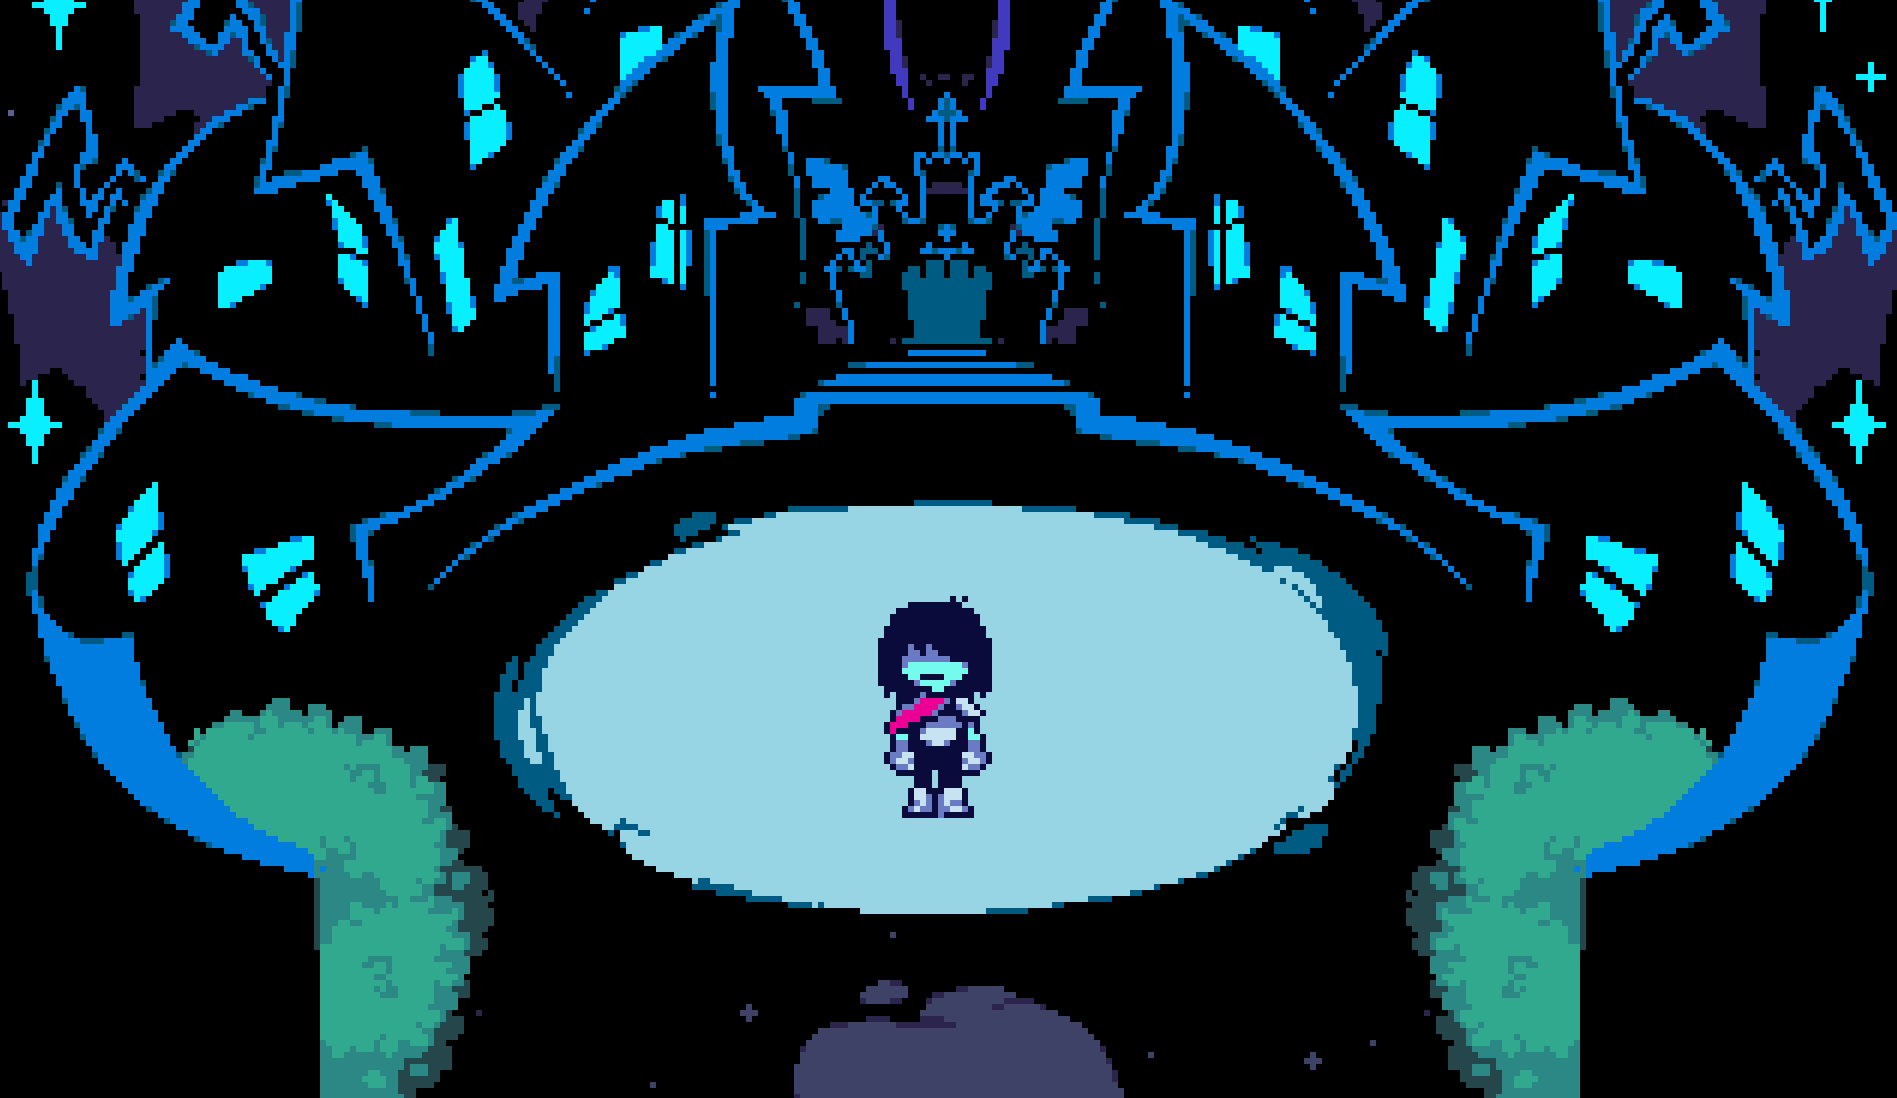 Undertale Fans Already Have Theories About What's Going On